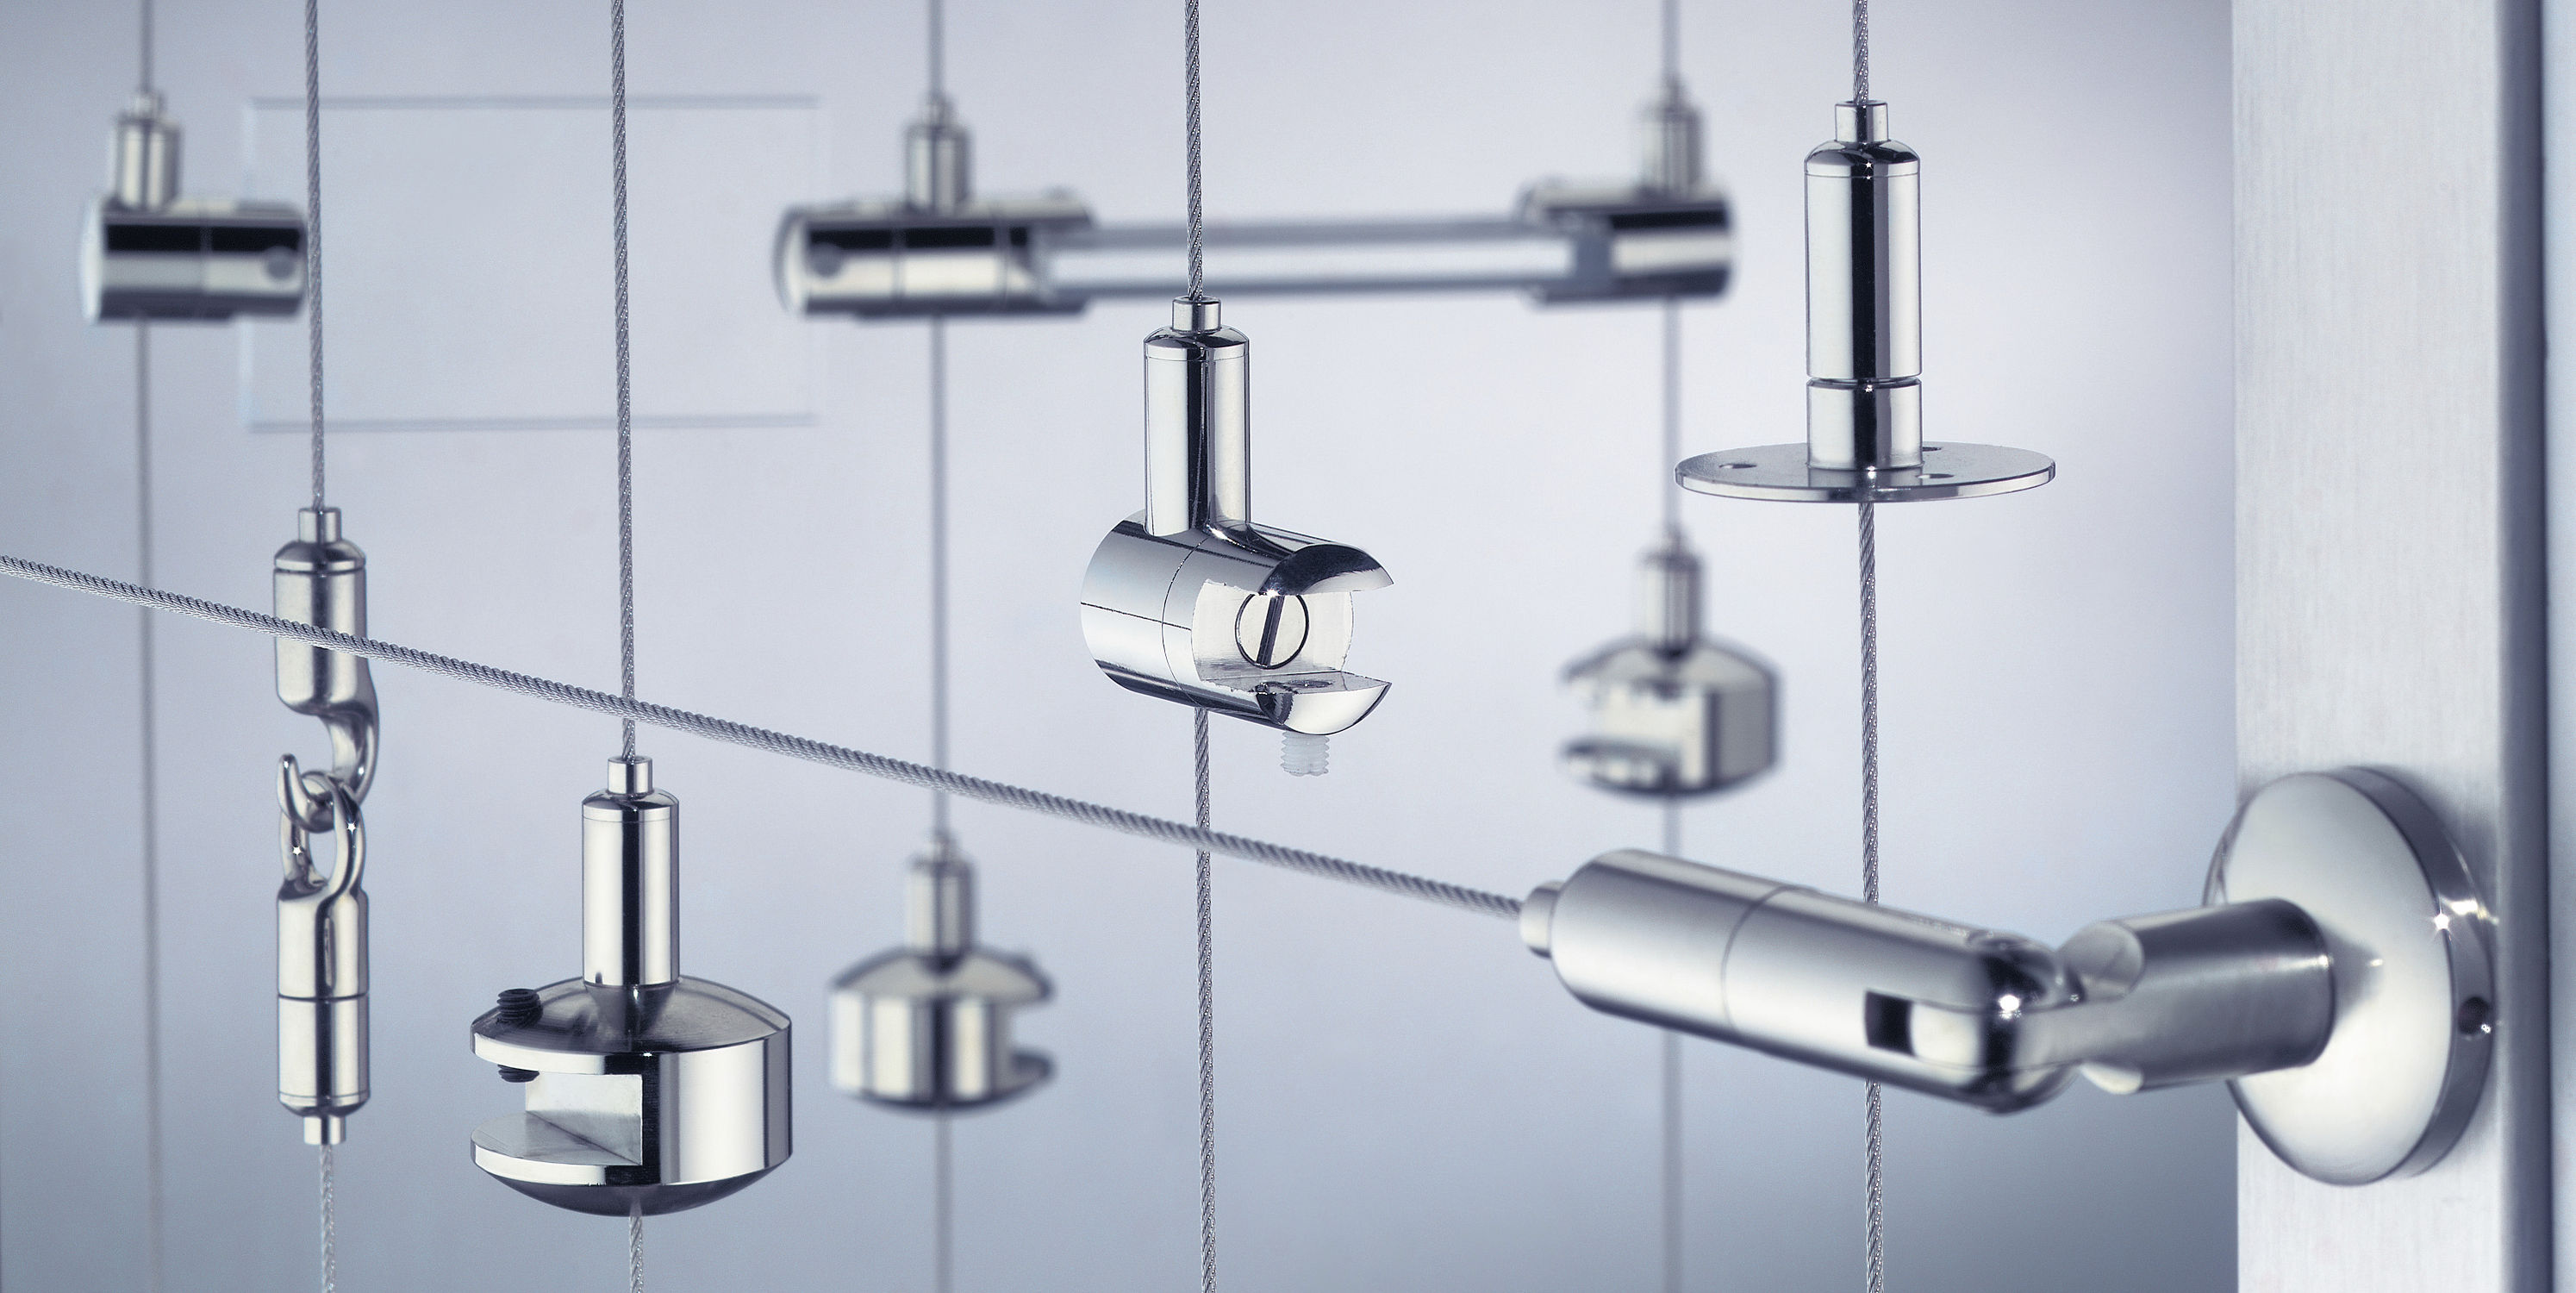 Wire Curtain Hanging System - 4k Wallpapers Design